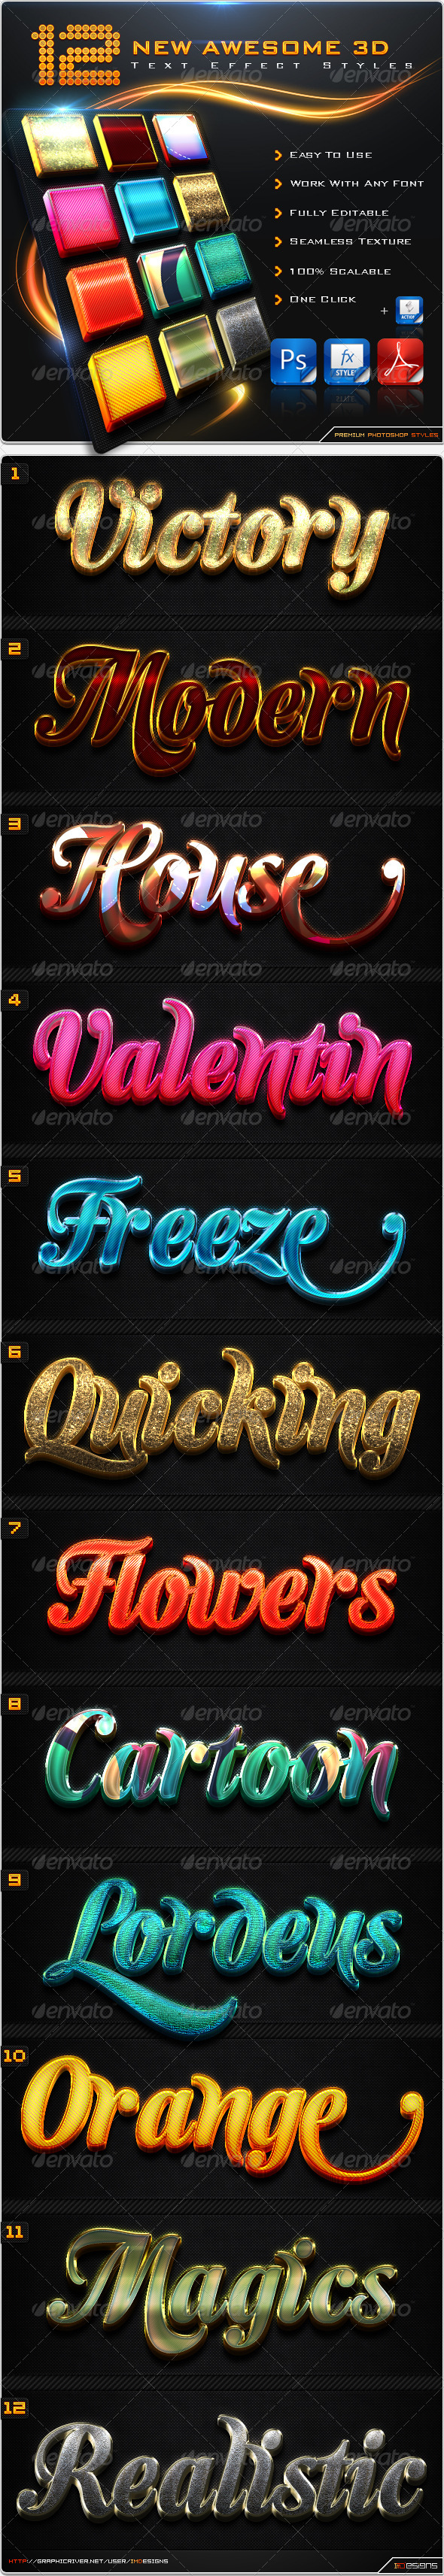 GraphicRiver 12 New Awesome 3D Text Effect Styles & Actions 8604061